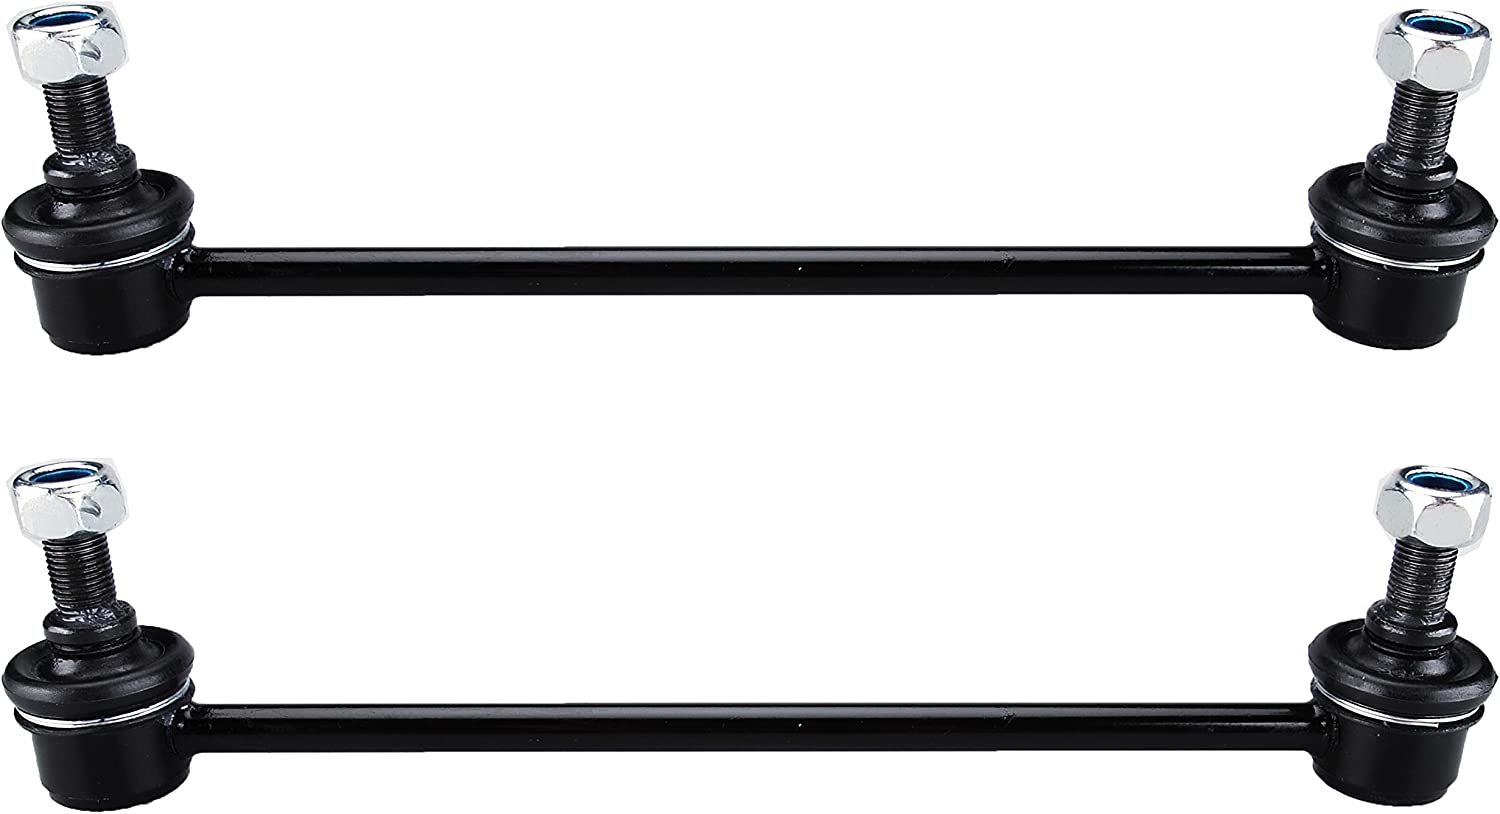 ROADFAR Front Sway Bar 予約販売品 爆買い送料無料 Endlink fit Compatible 2013-2014 for Toyo